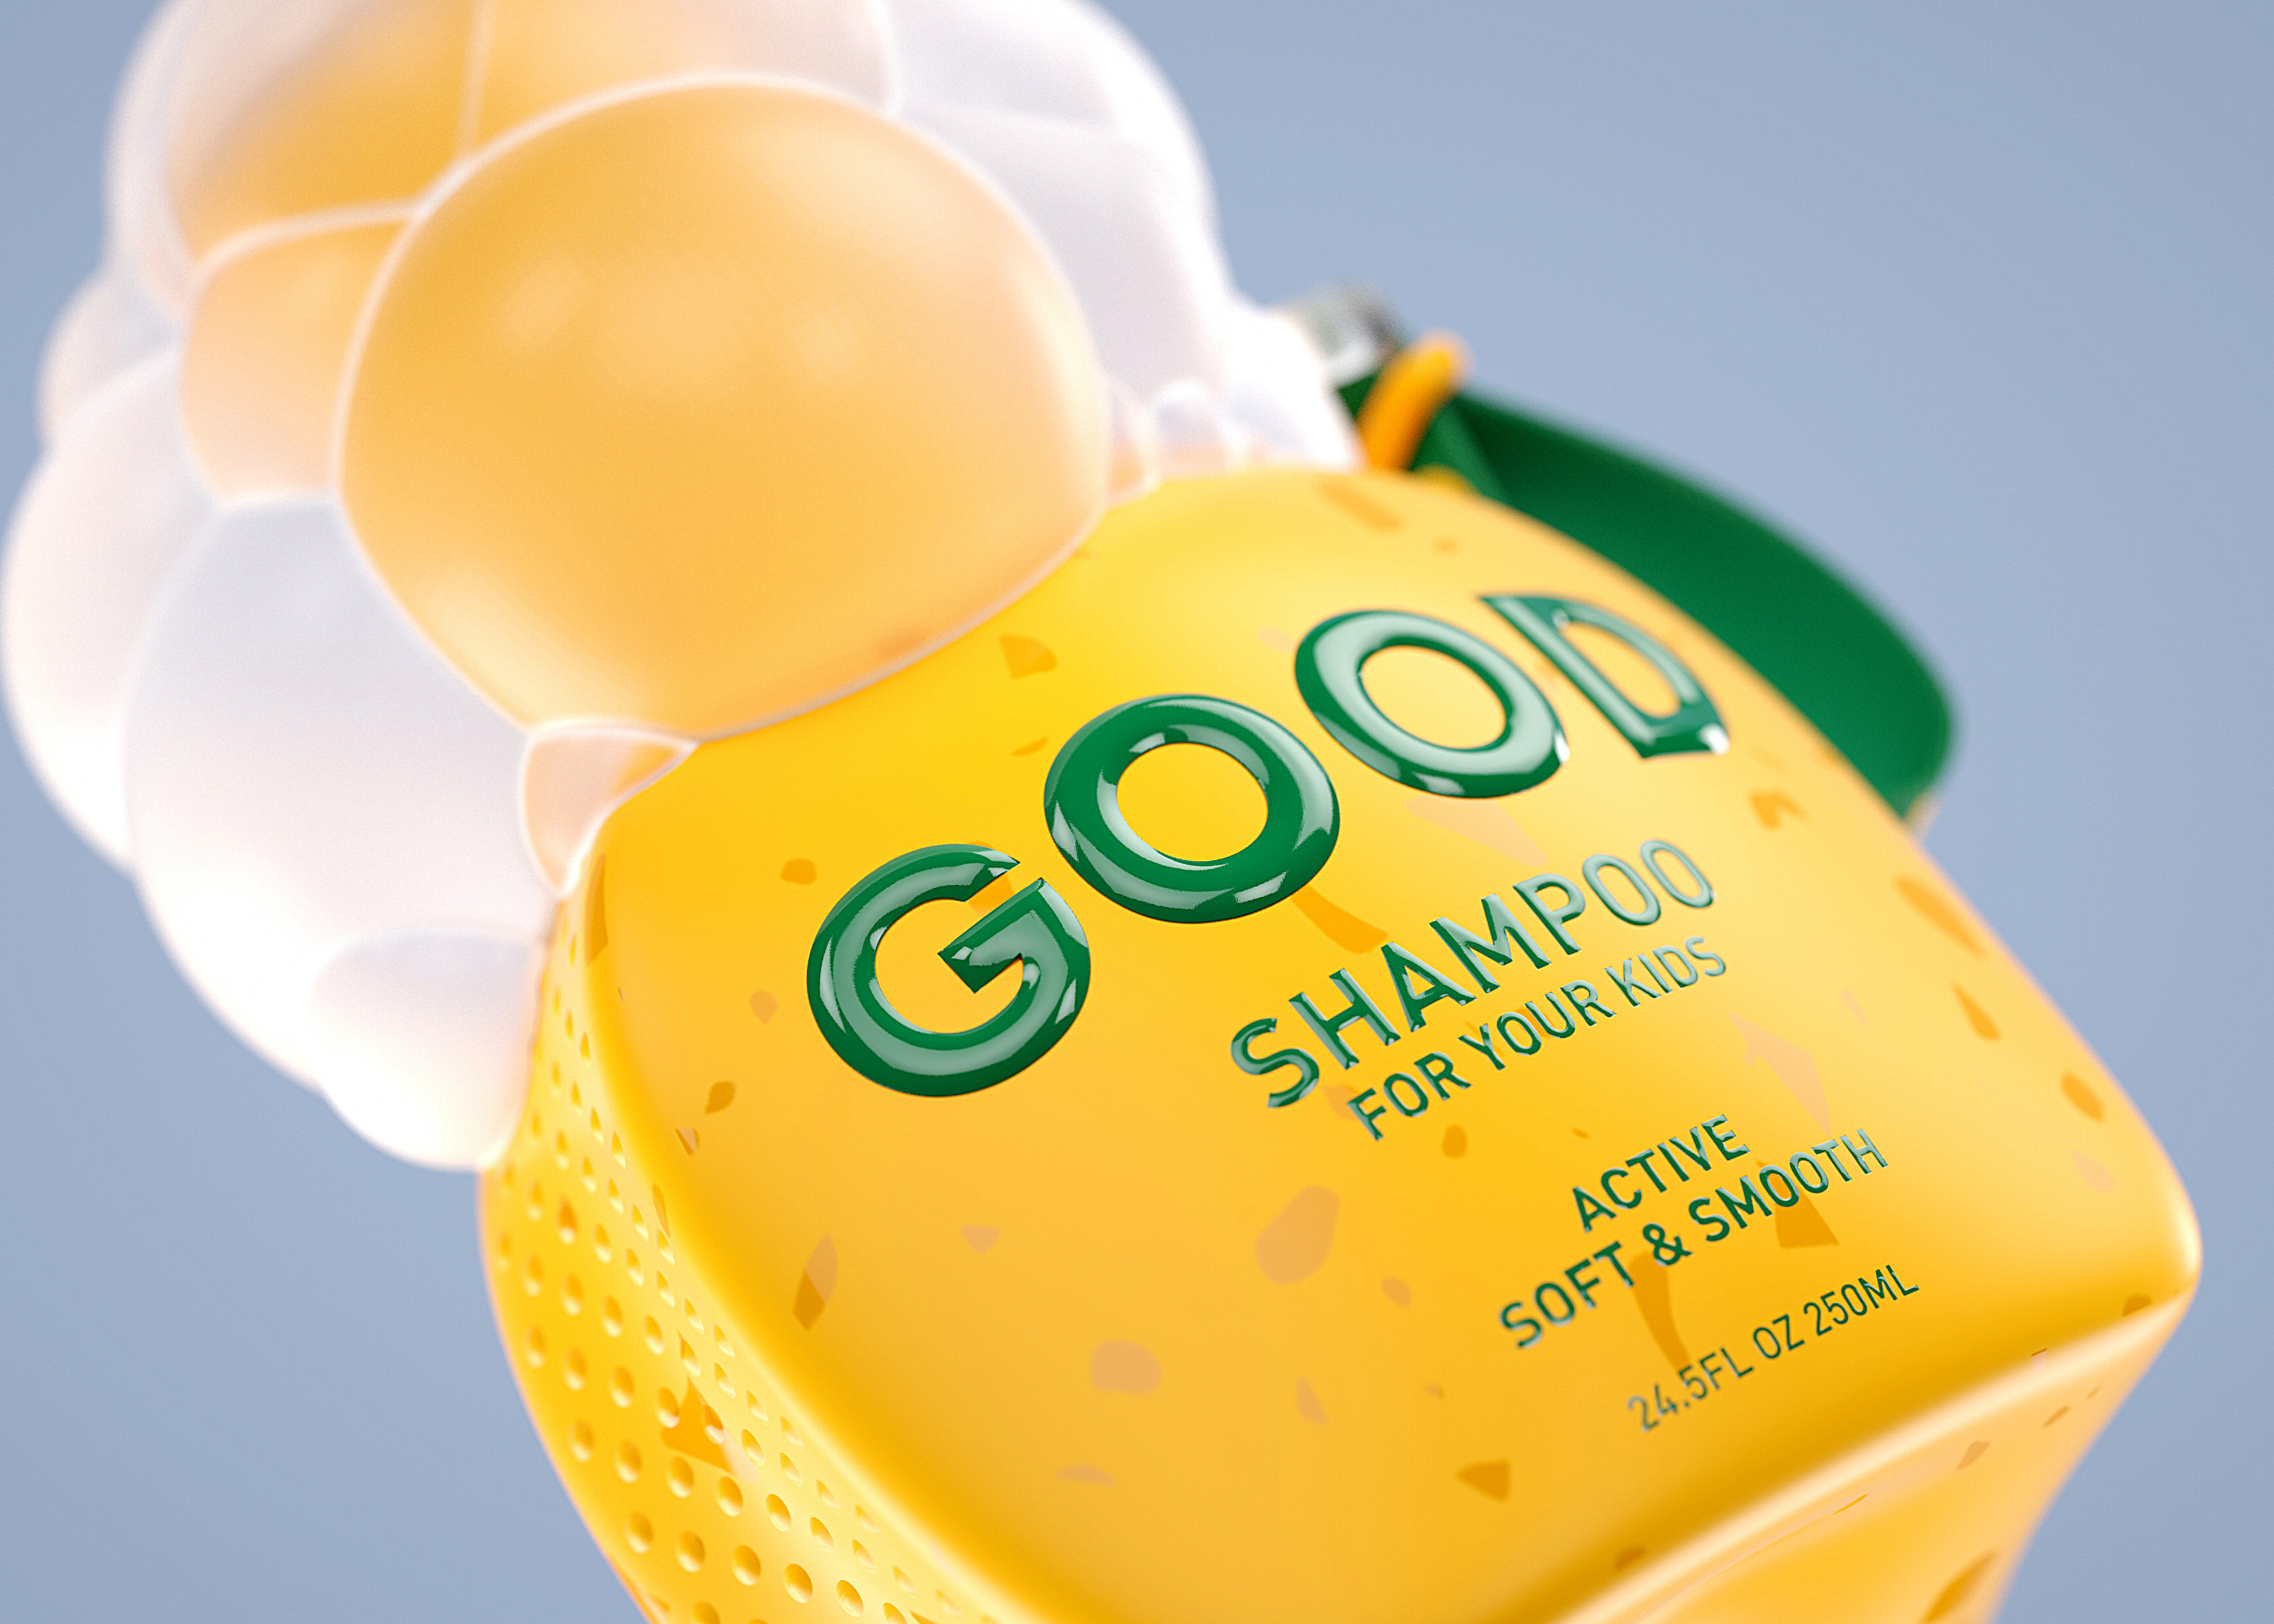 Concept For Natural Shampoo and Body Wash For The Whole Family